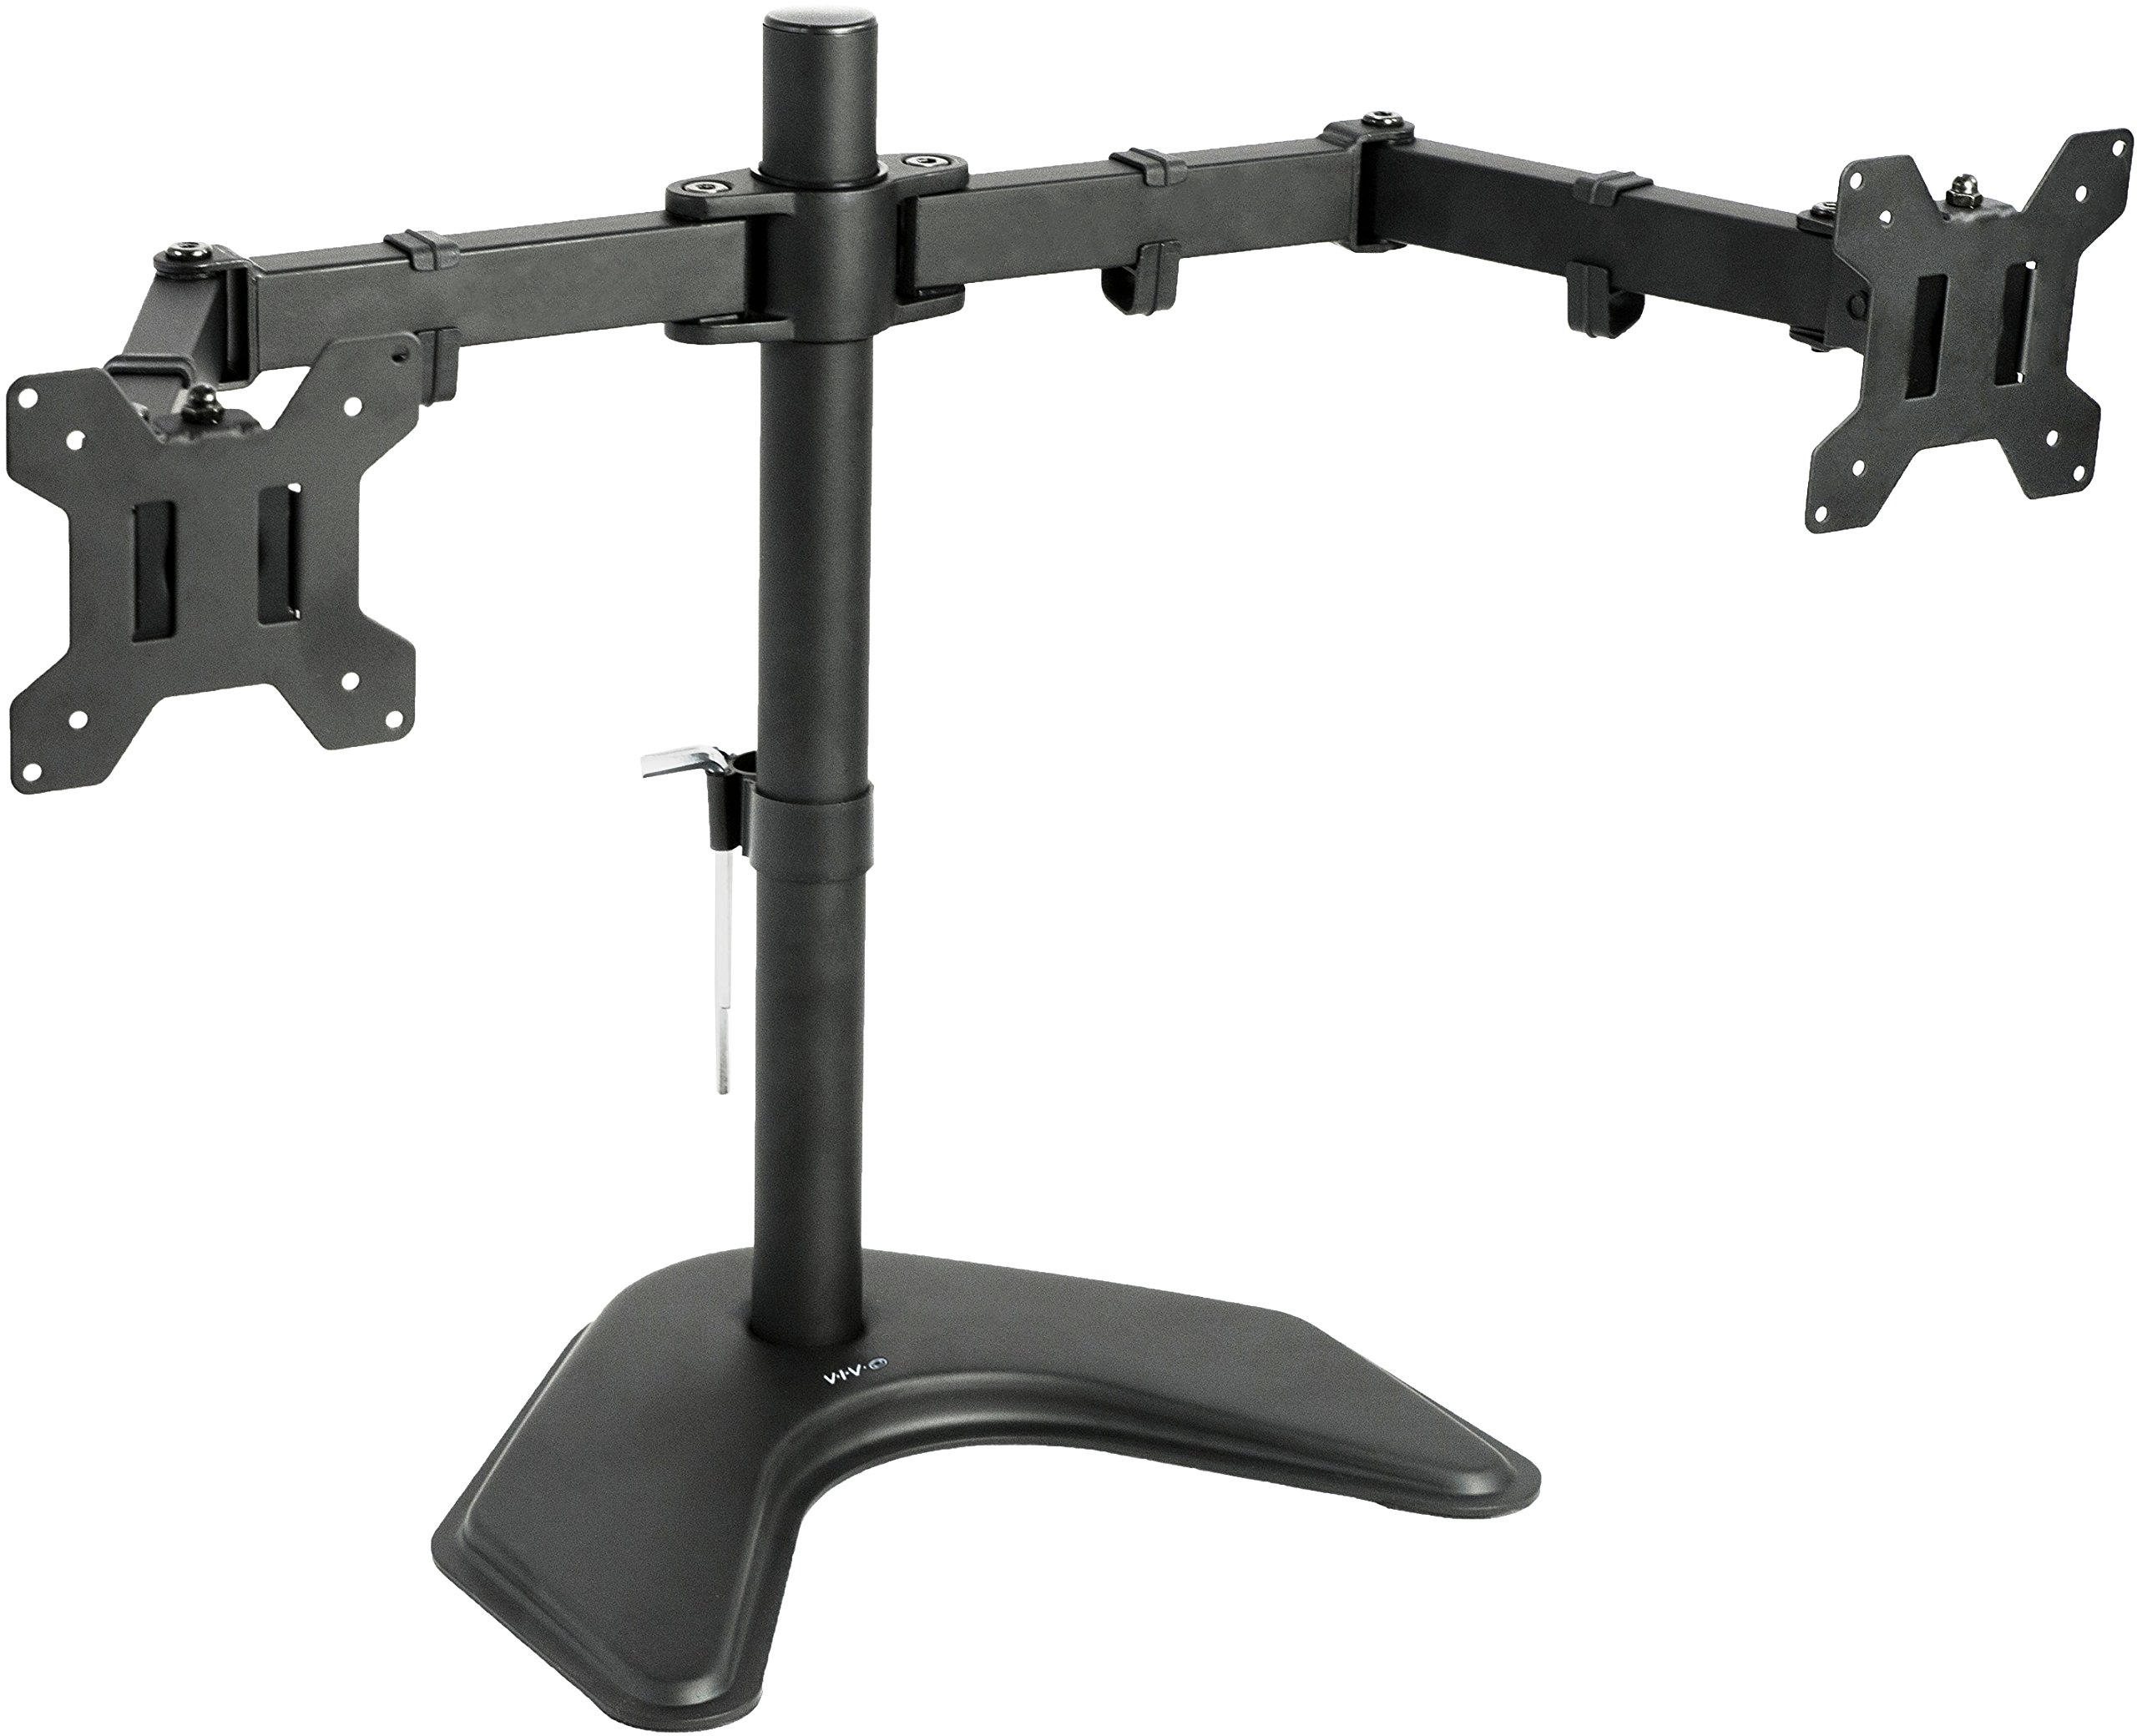 VIVO Dual LCD Monitor Free Standing Desk Mount with Optional Bolt-through Grommet / Stand Heavy Duty Fully Adjustable fits Two Screens up to 27'' (STAND-V002F)